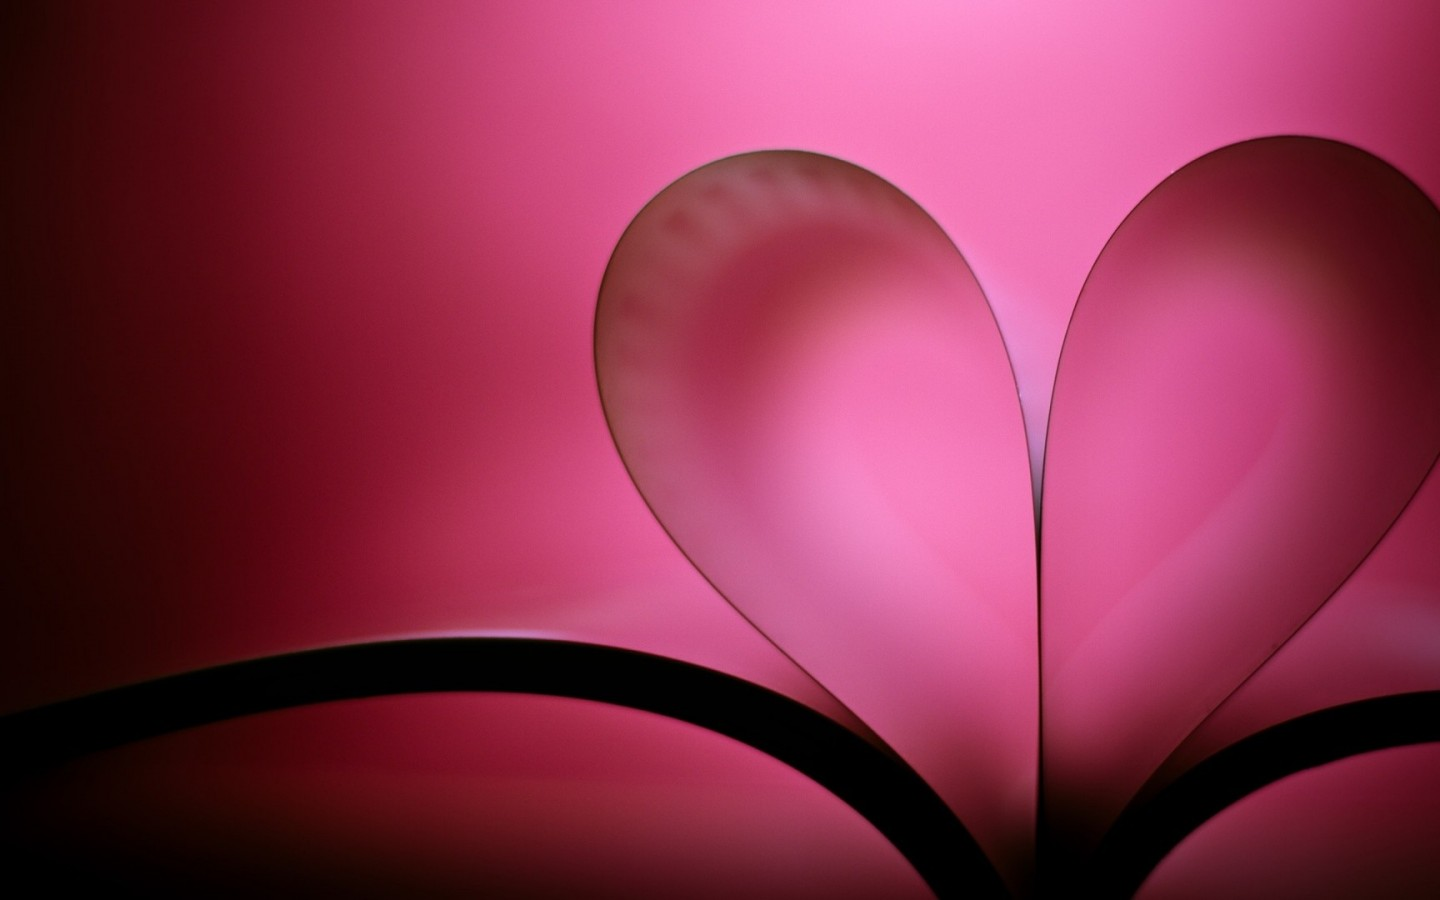 Wallpaper For Laptop Of Love : HD Love Wallpapers for Laptop - WallpaperSafari